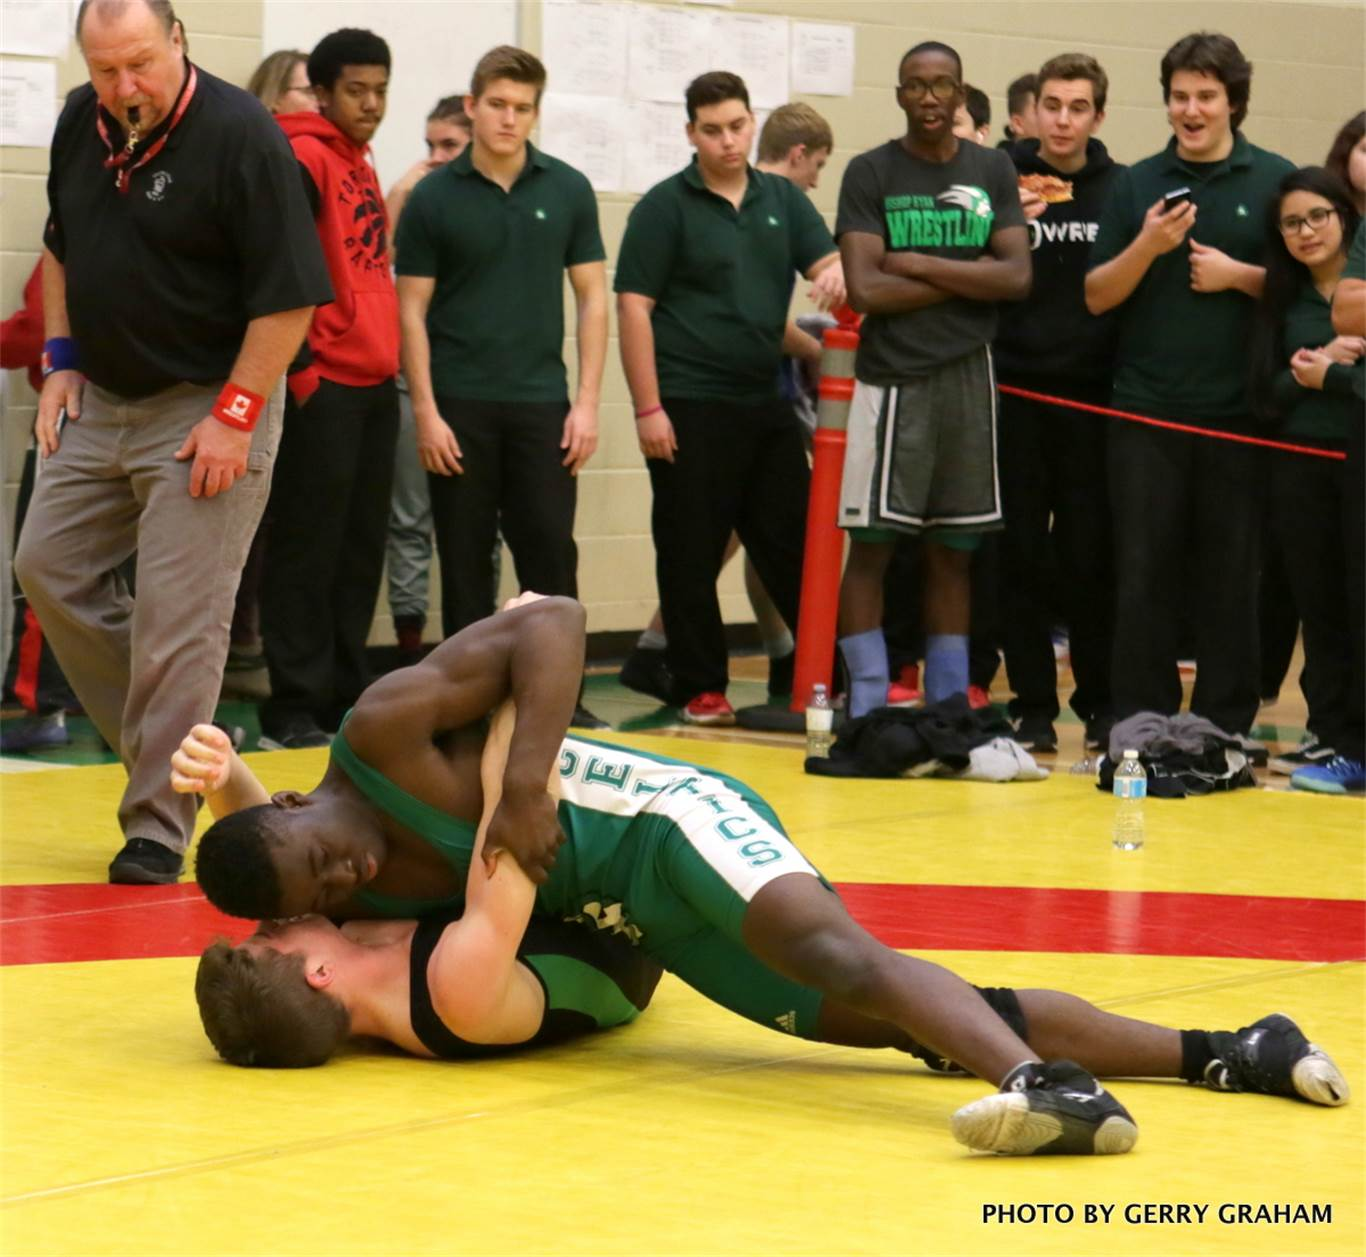 Bishop Ryan Wrestling Open attracts high level of competition